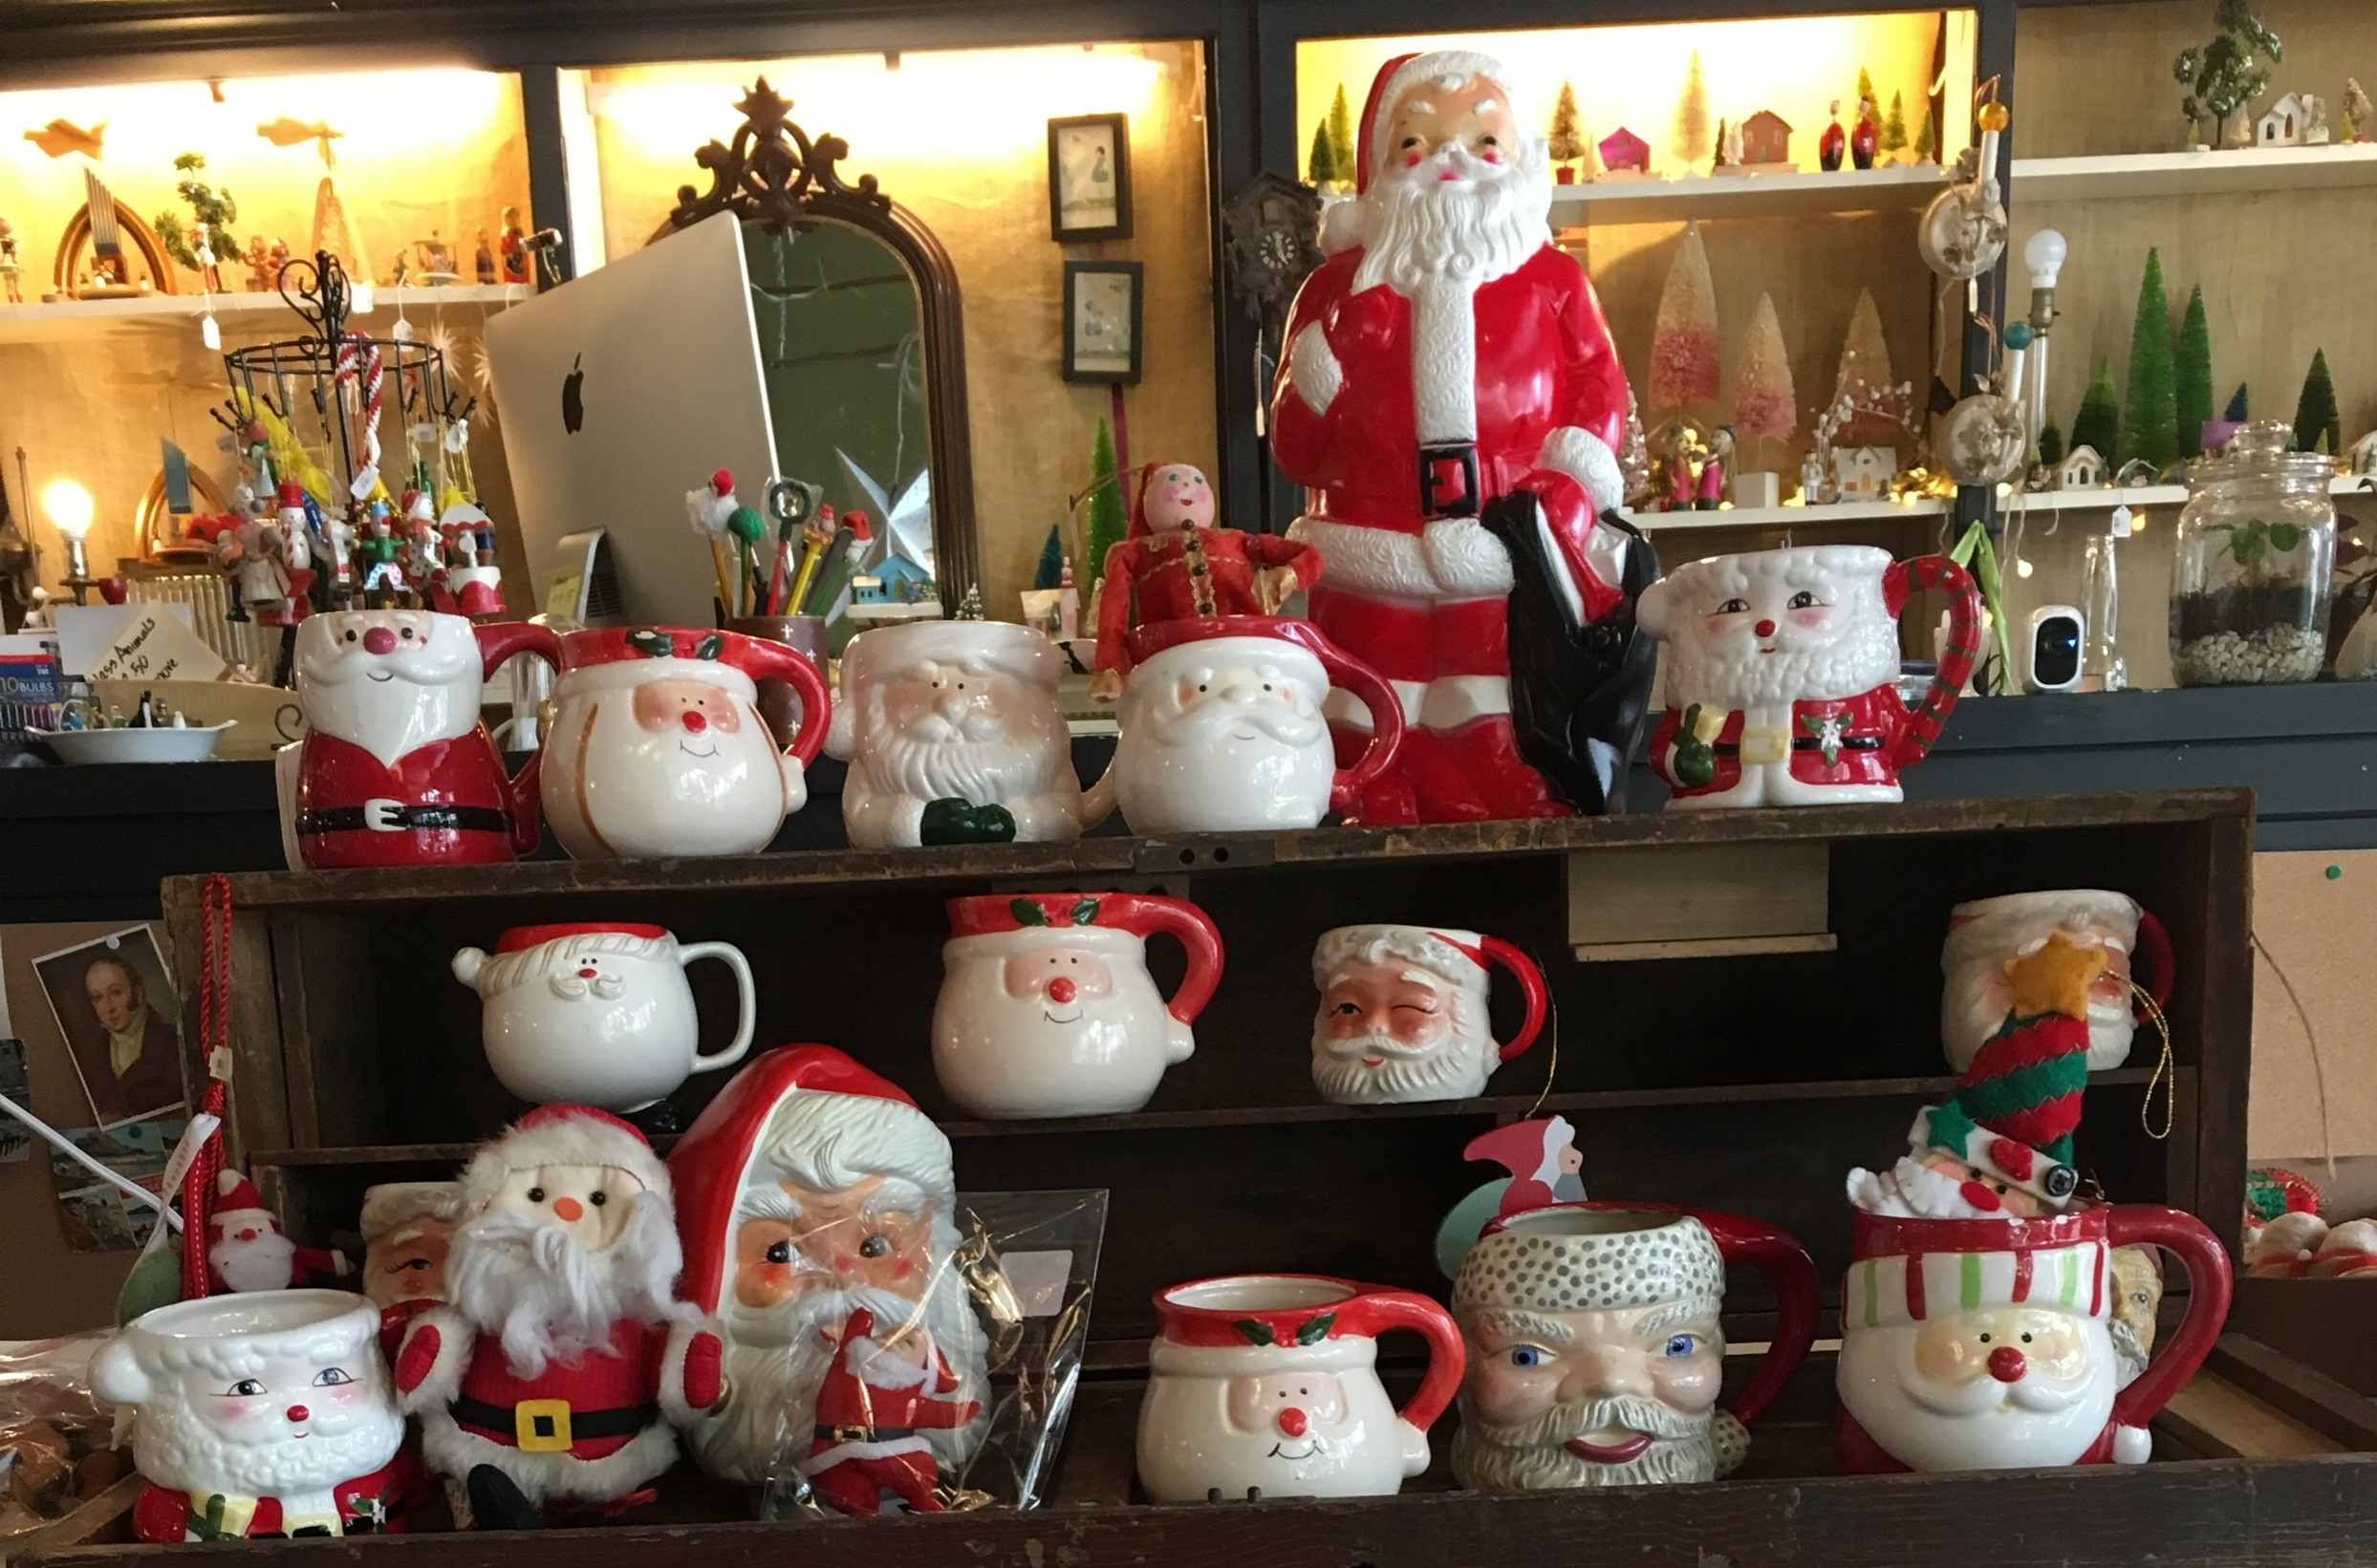 HO Ho Ho - Christmas is coming and we have loads of Vintage Ornaments. Come on by and see for yourself